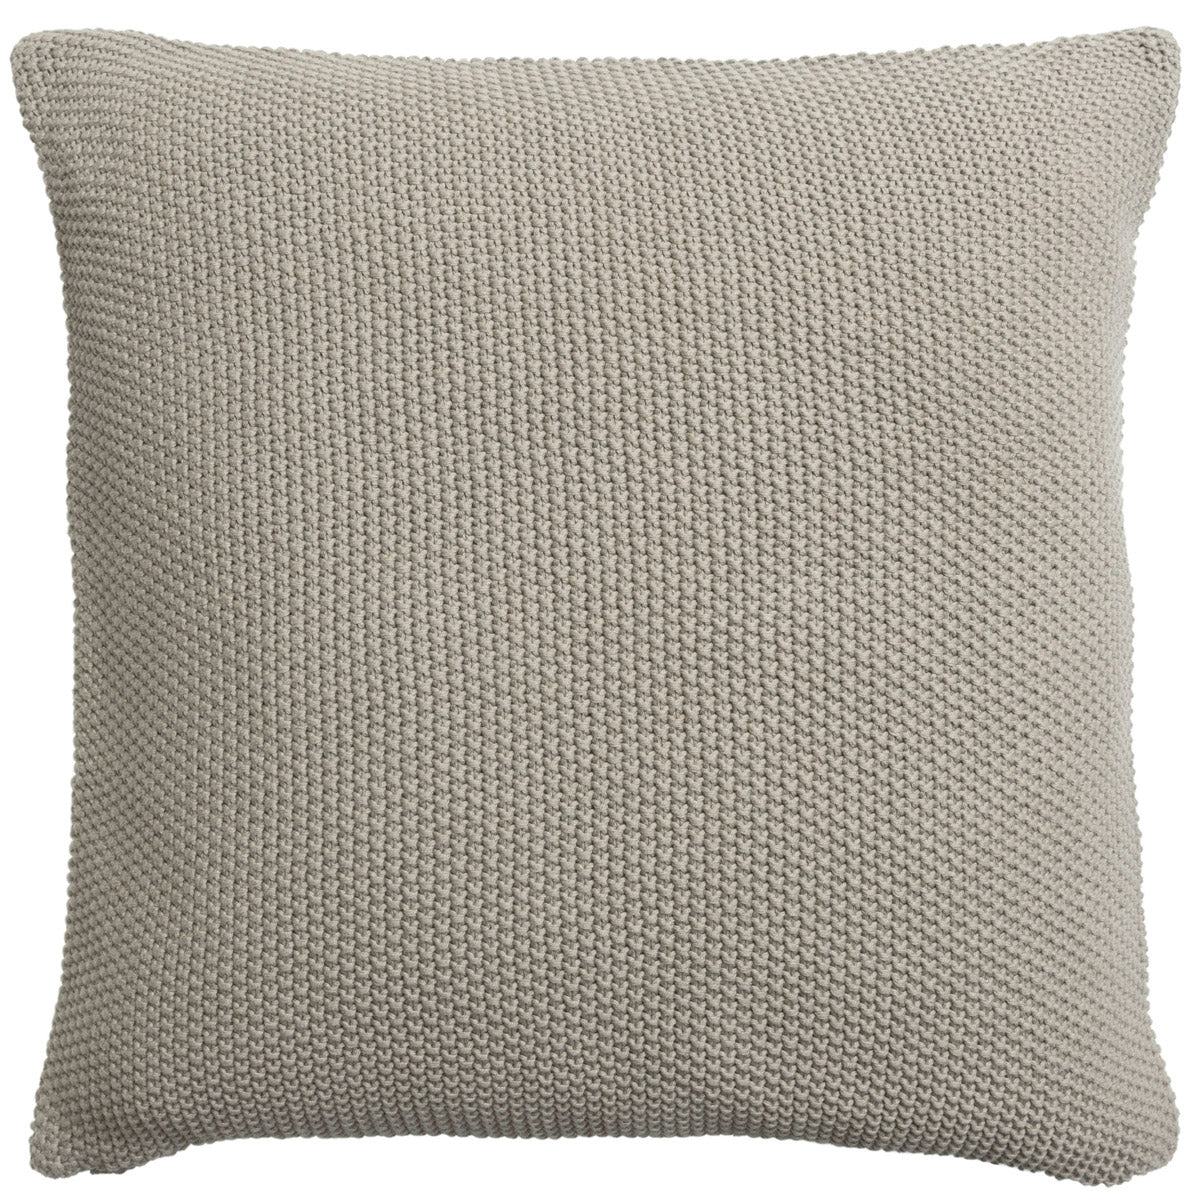 Grey Taupe Knitted Cushion